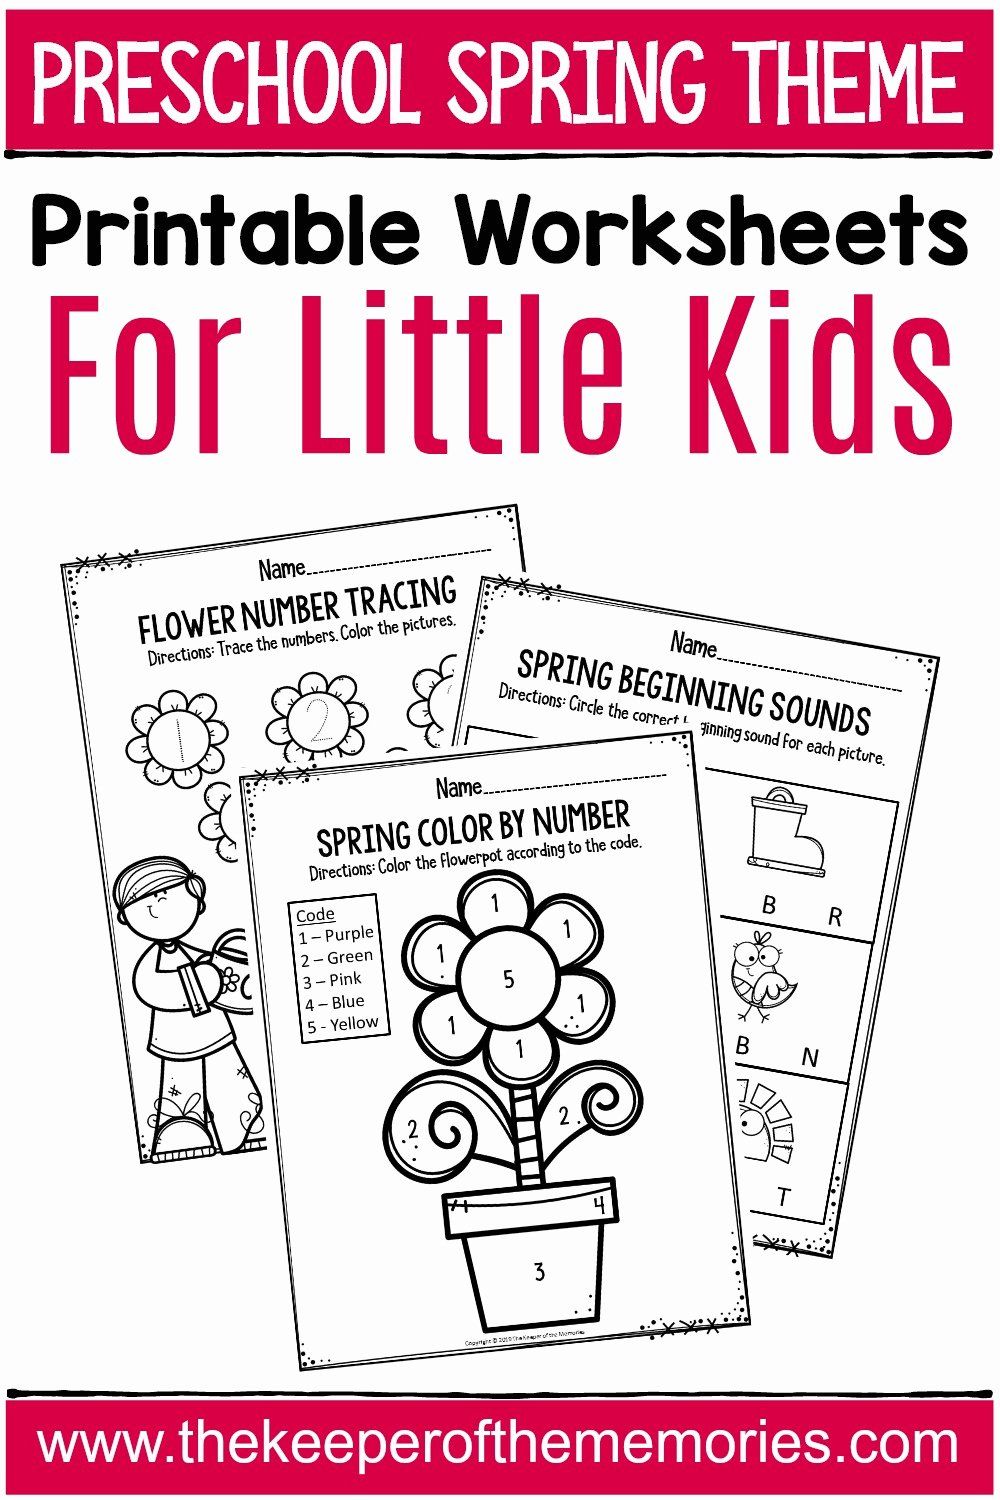 Spring Printable Worksheets for Preschoolers Best Of Spring Printable Preschool Worksheets the Keeper Of the